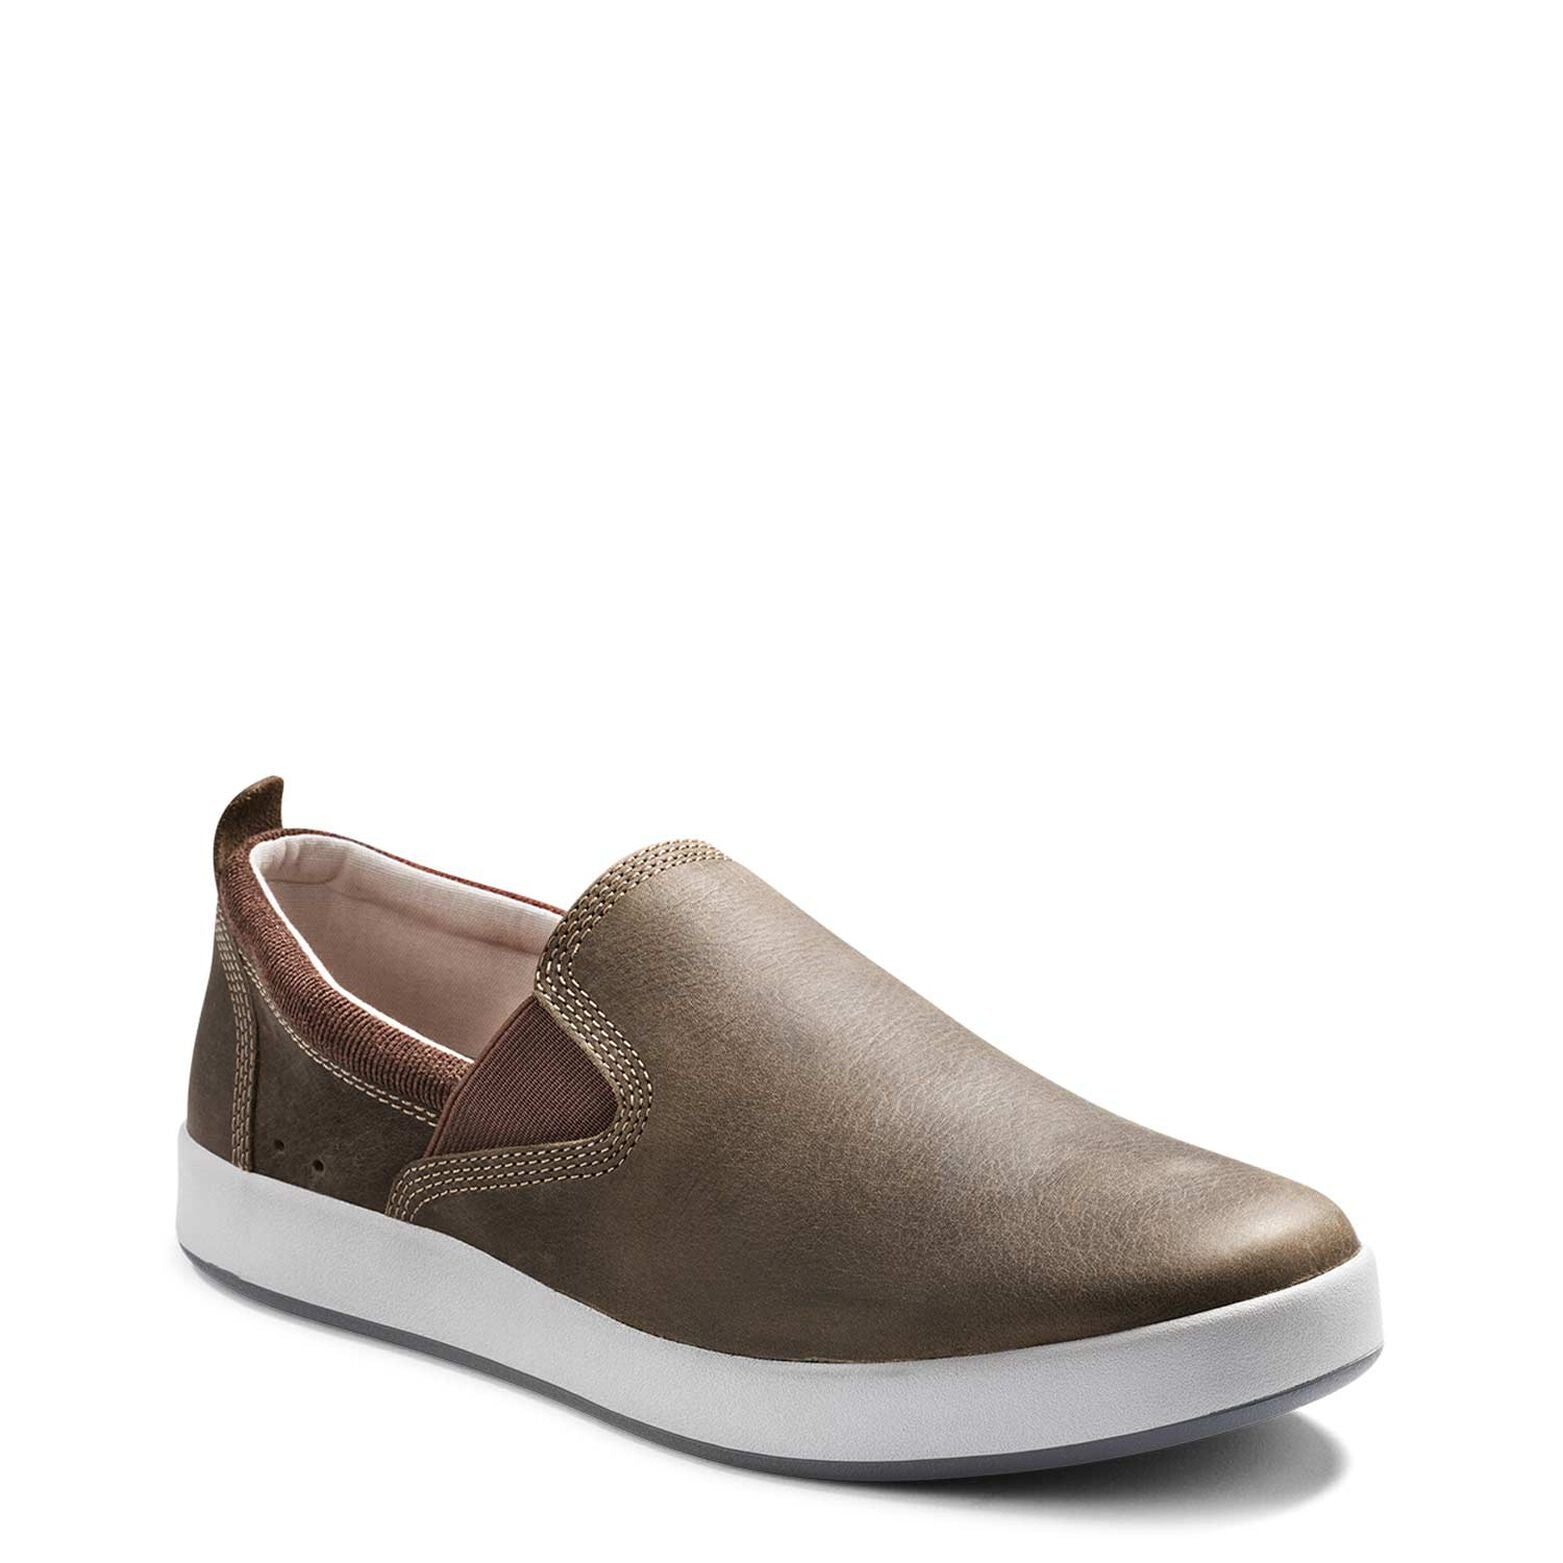 Kodiak Canmore Slip-On - Mens